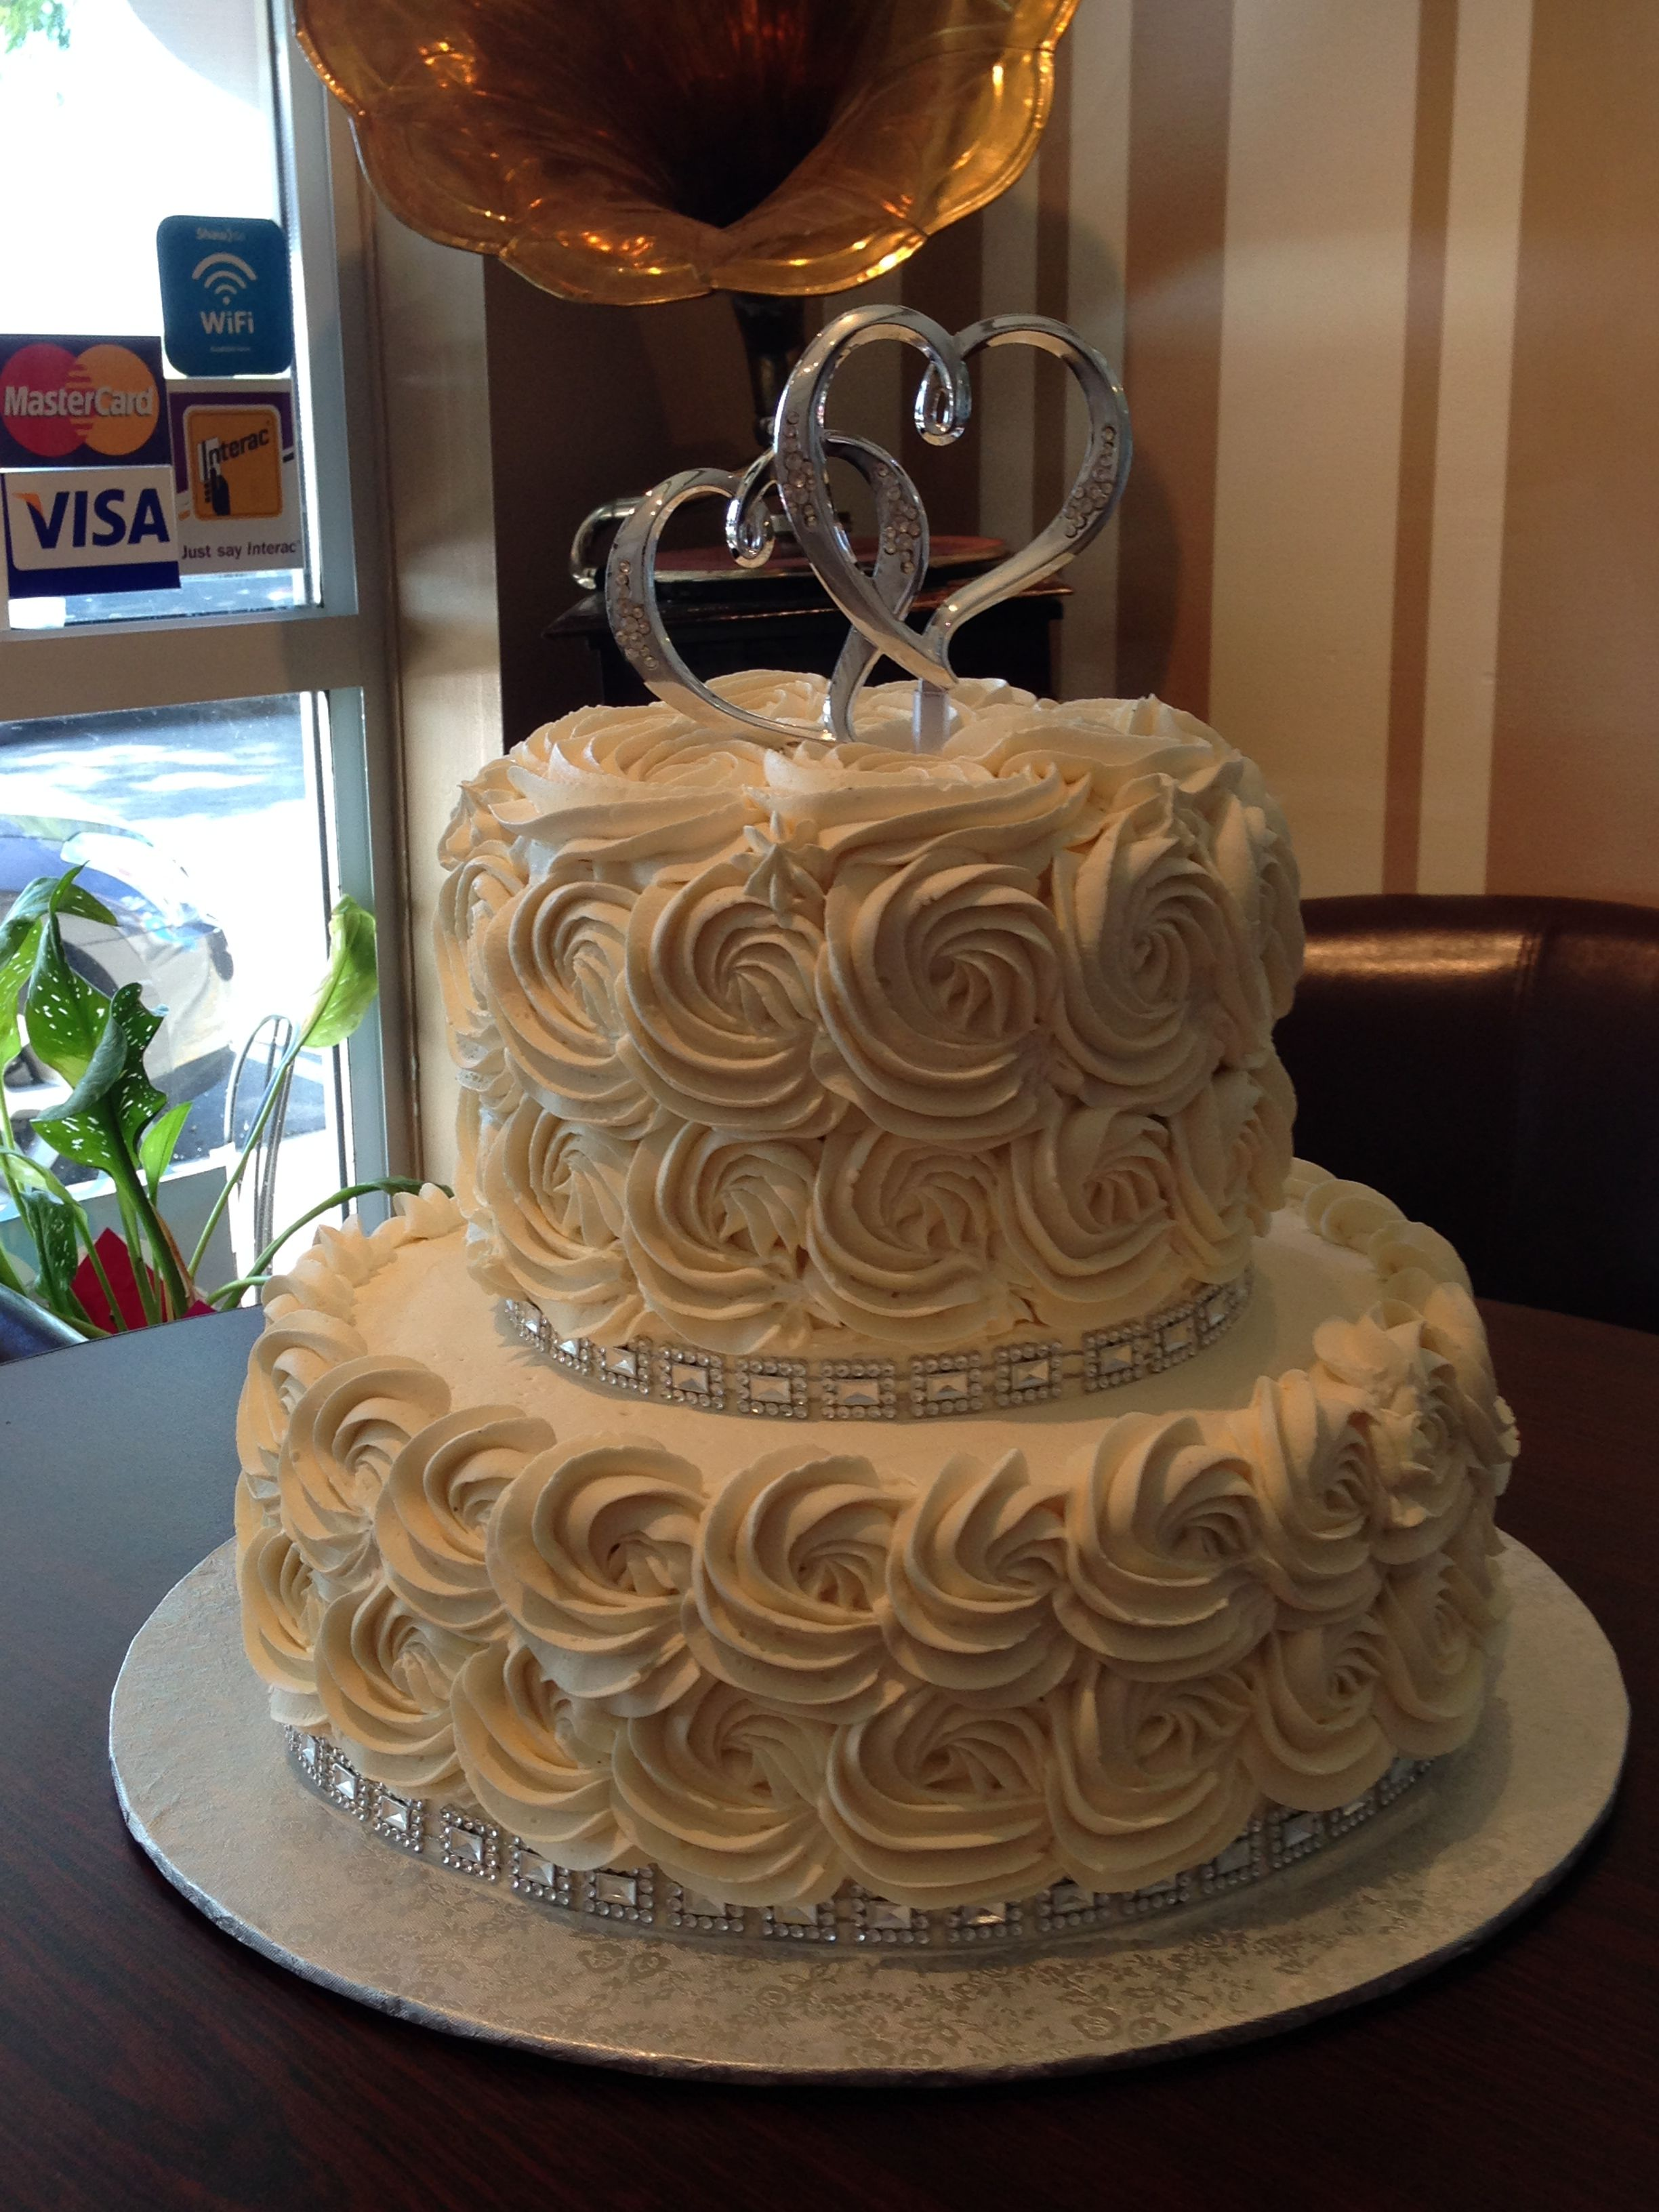 The Silver Bling Really Makes This Simple 2 Tier Rosette Cake Go